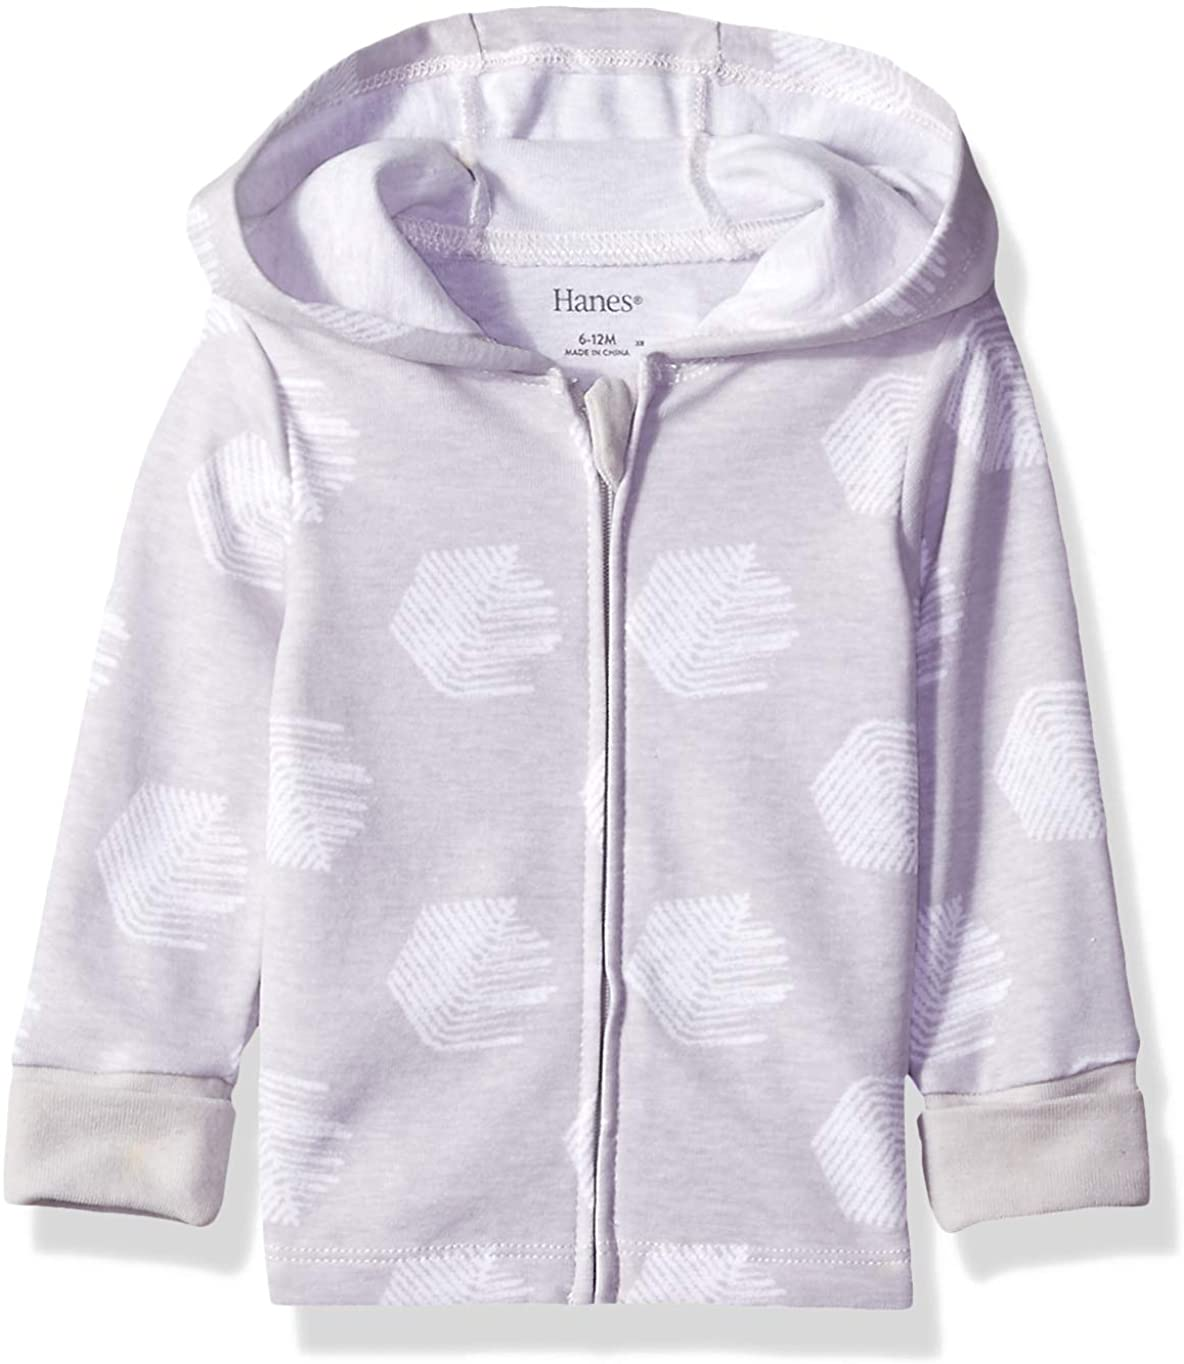 Hanes Girls' Ultimate Baby Zippin Knit Hoodie